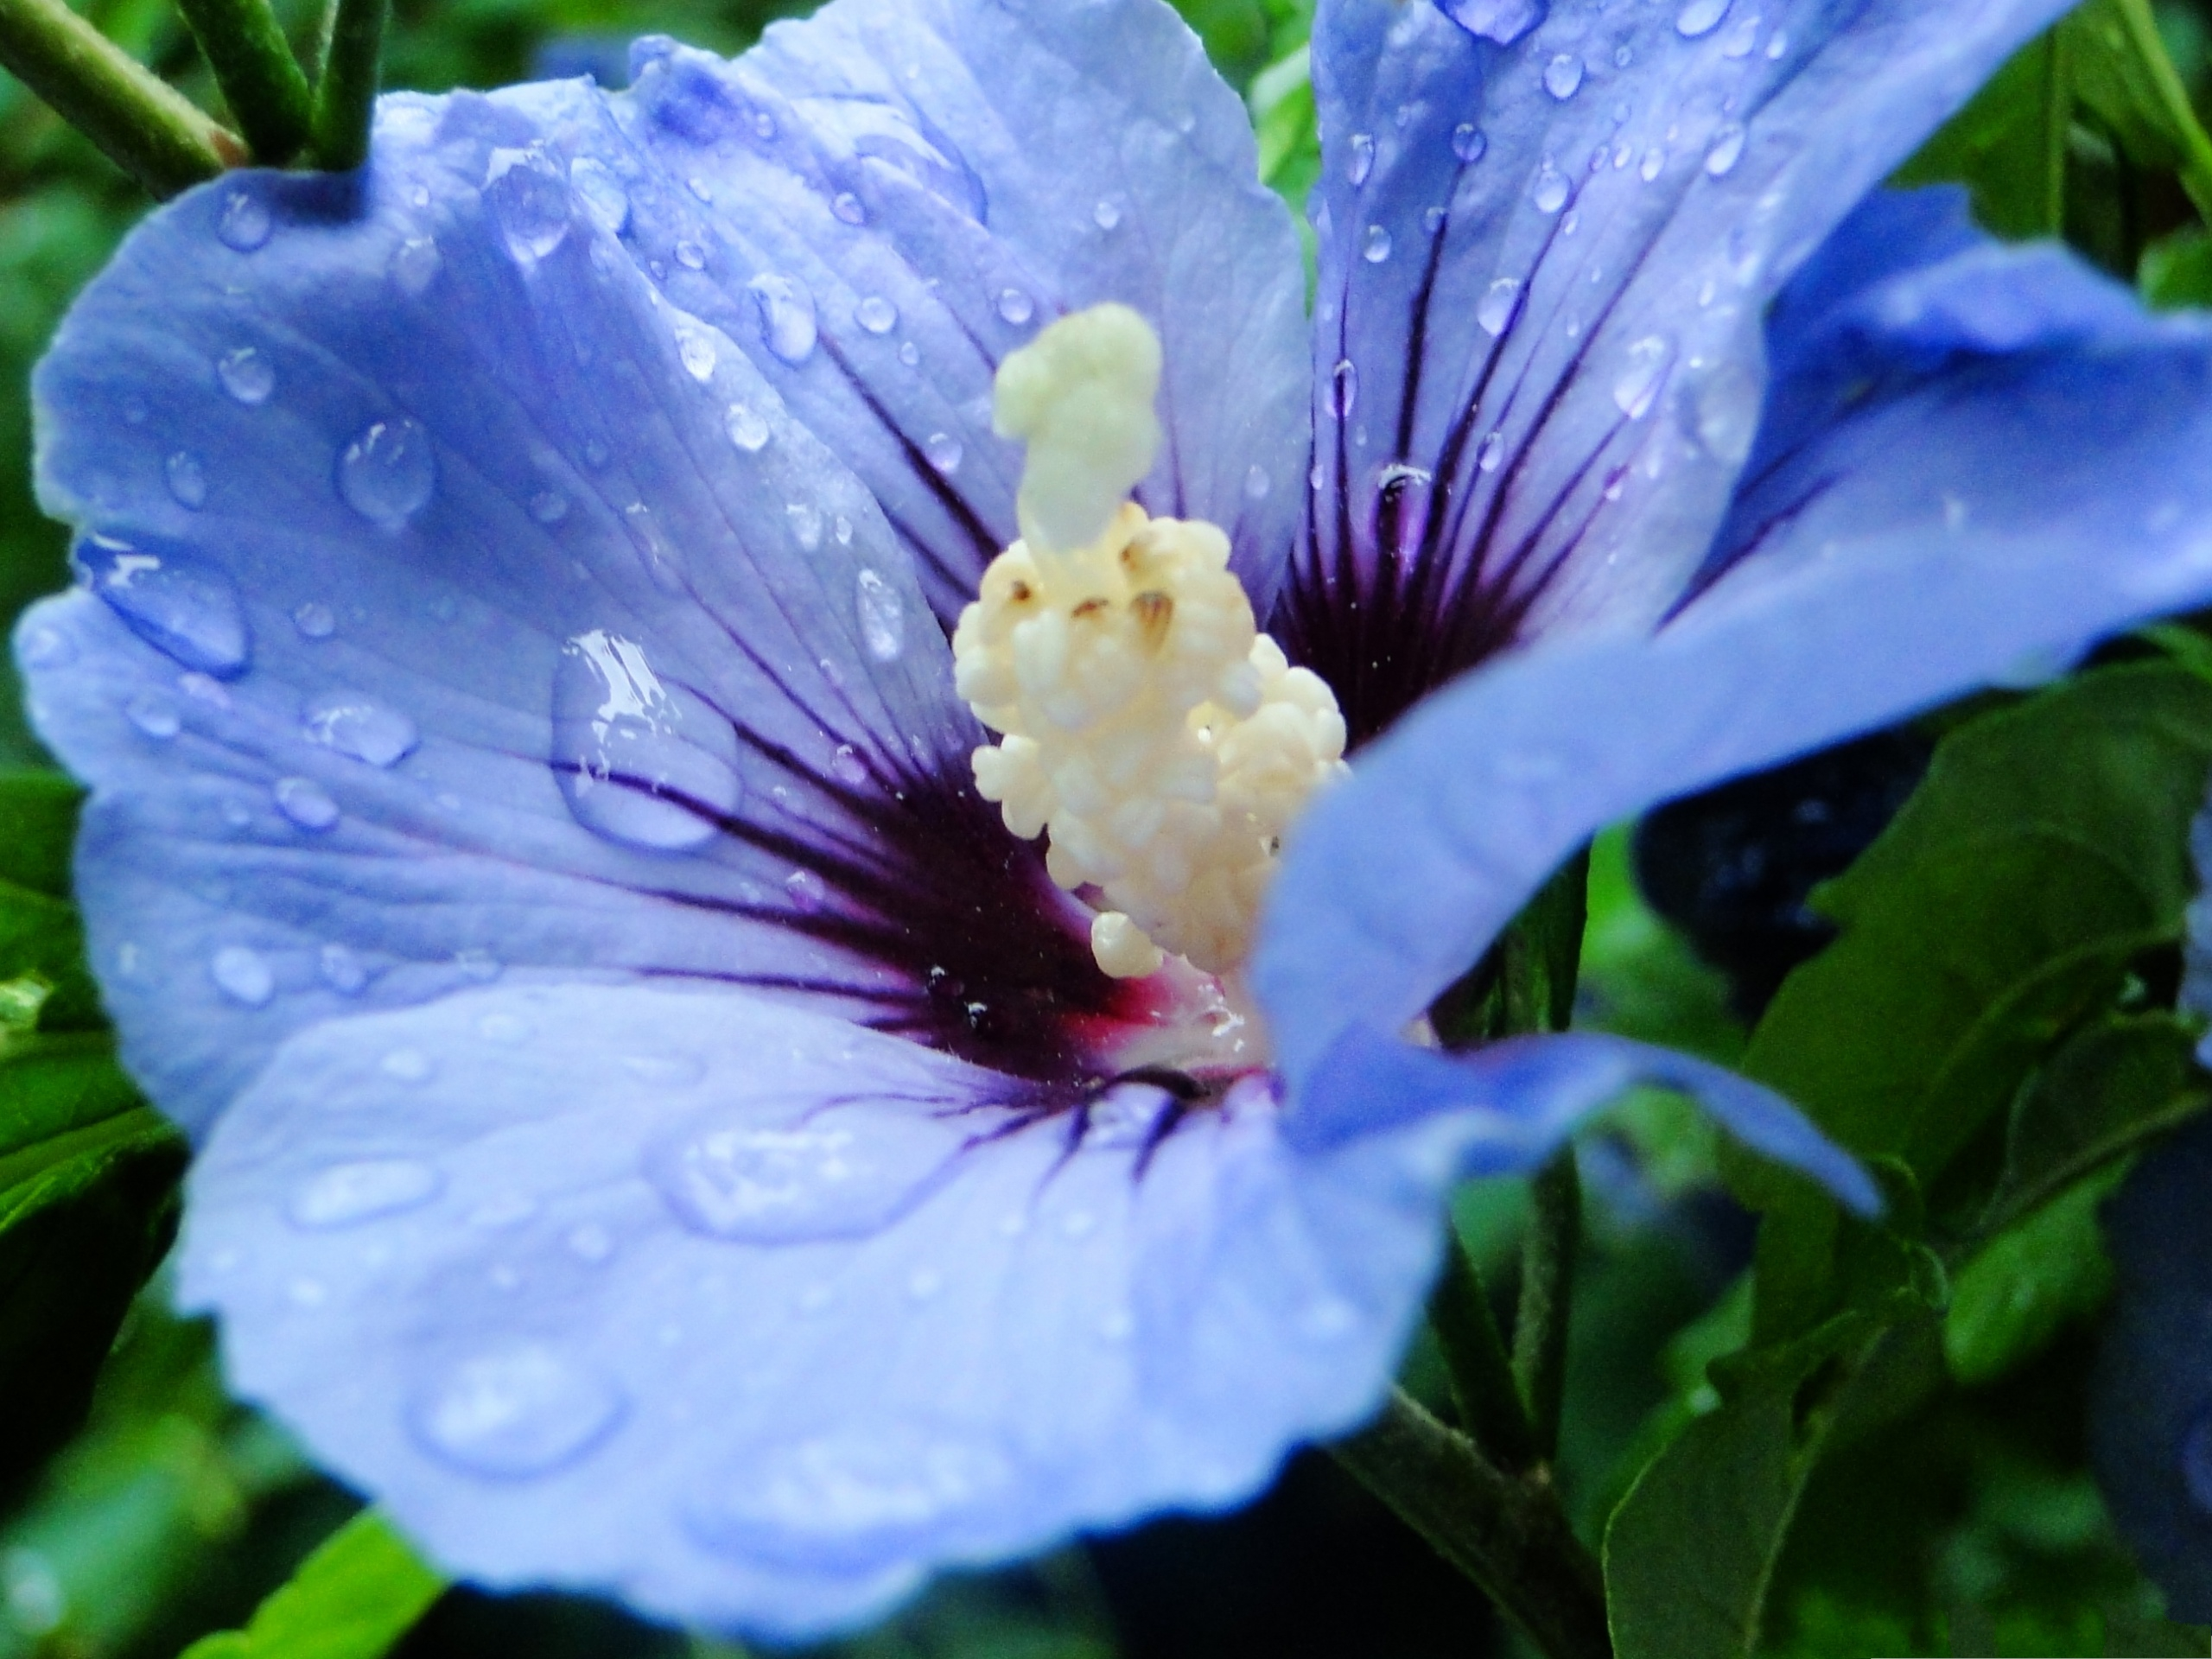 click to free download the wallpaper--Blue Flower Picture, Beautiful Flowers with Rain Drops, Green Leaves Around 2560X1920 free wallpaper download